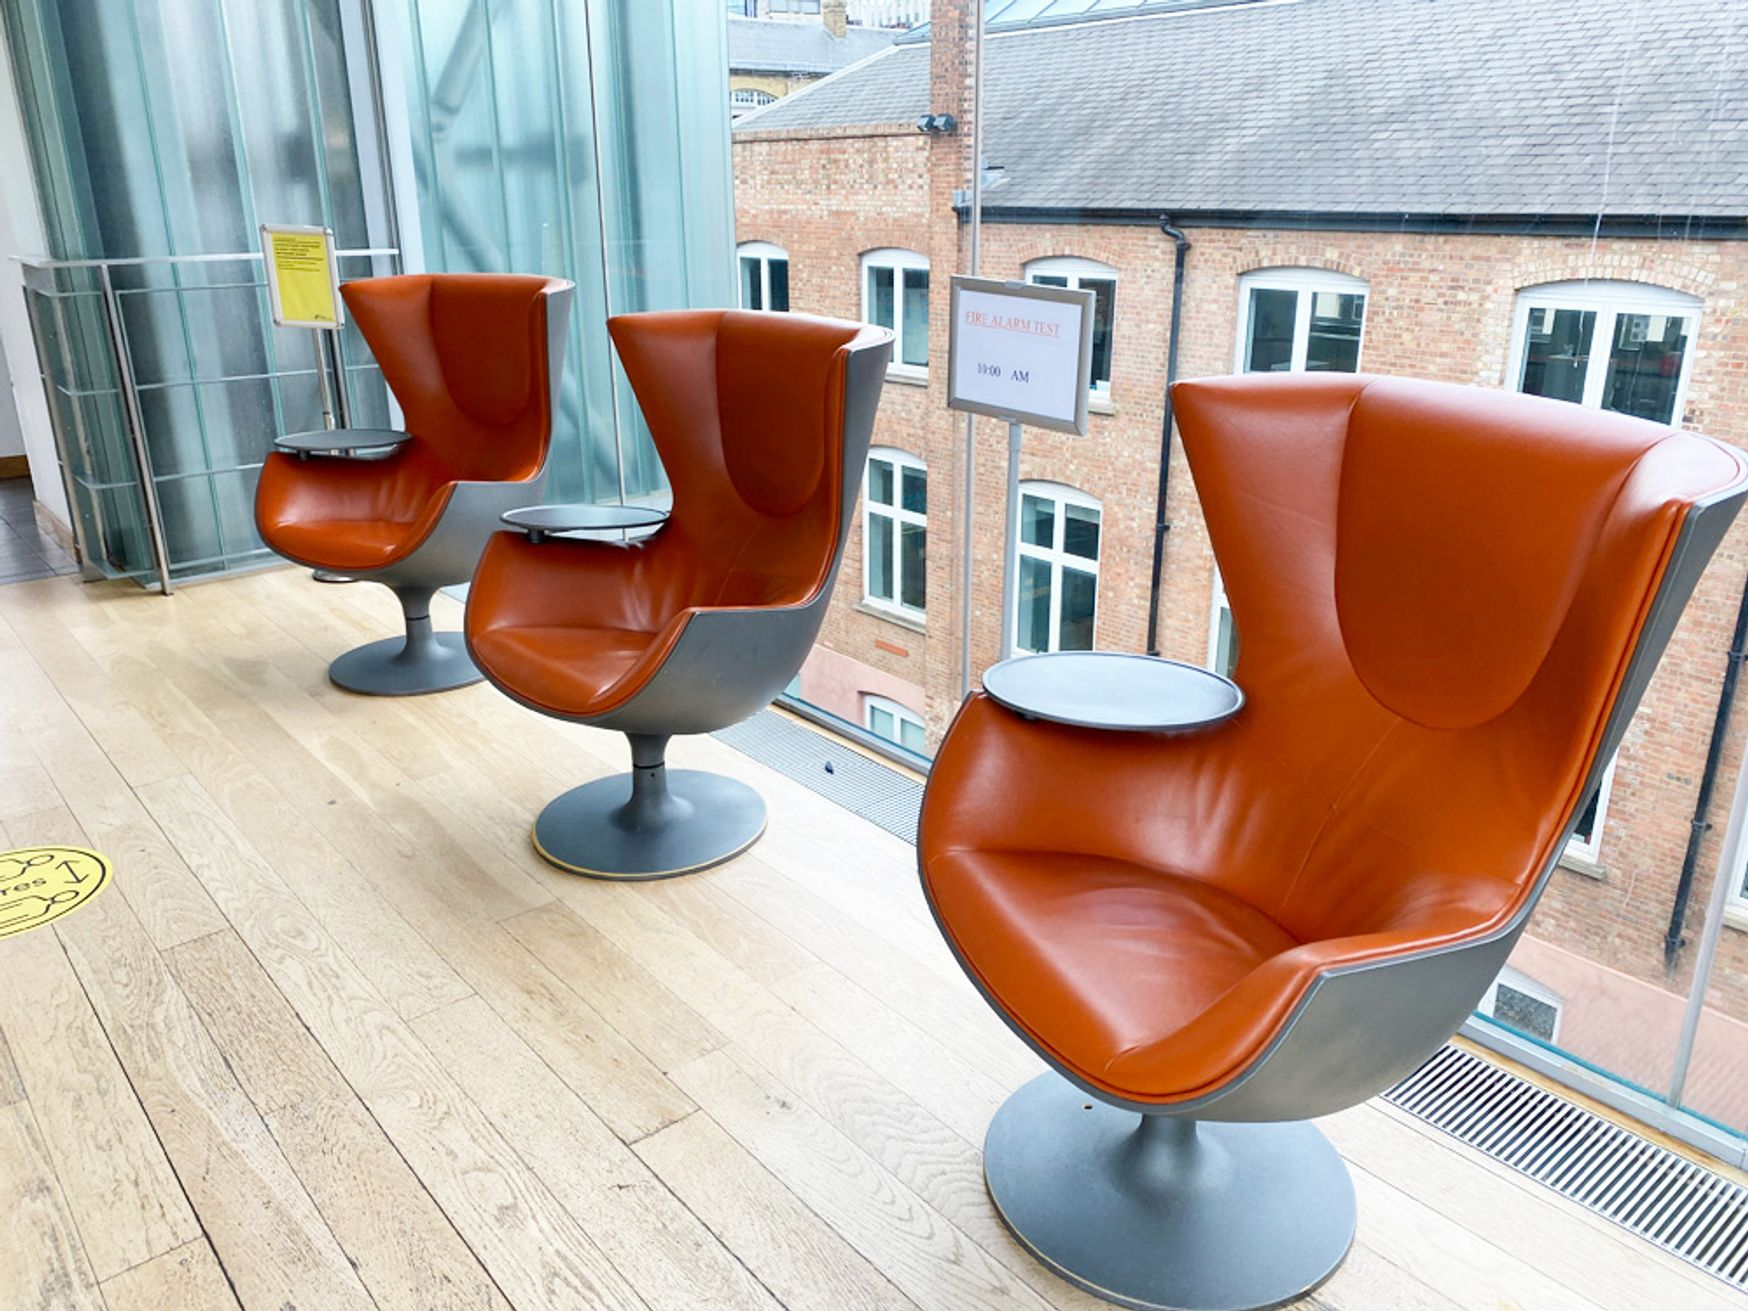 Outstanding original 'Eurostar' chairs designed specifically for Eurostar by Phillipe Starck. Manufactured by Cassina.